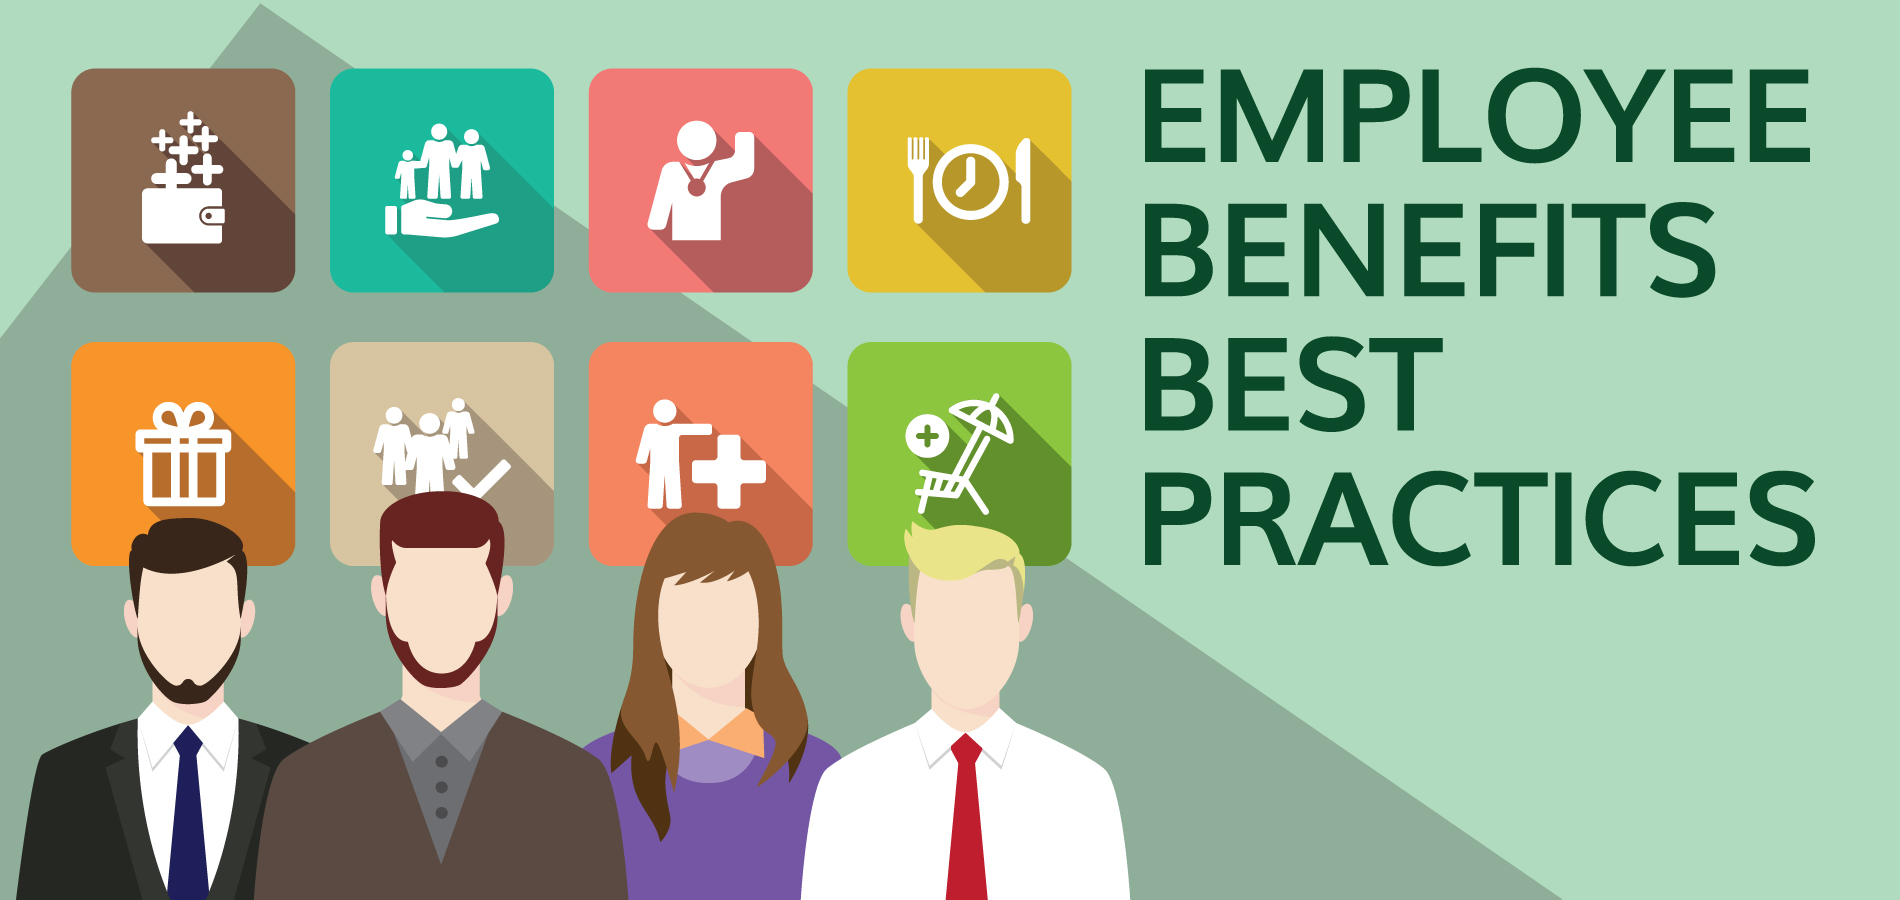 Employee benefits best practices